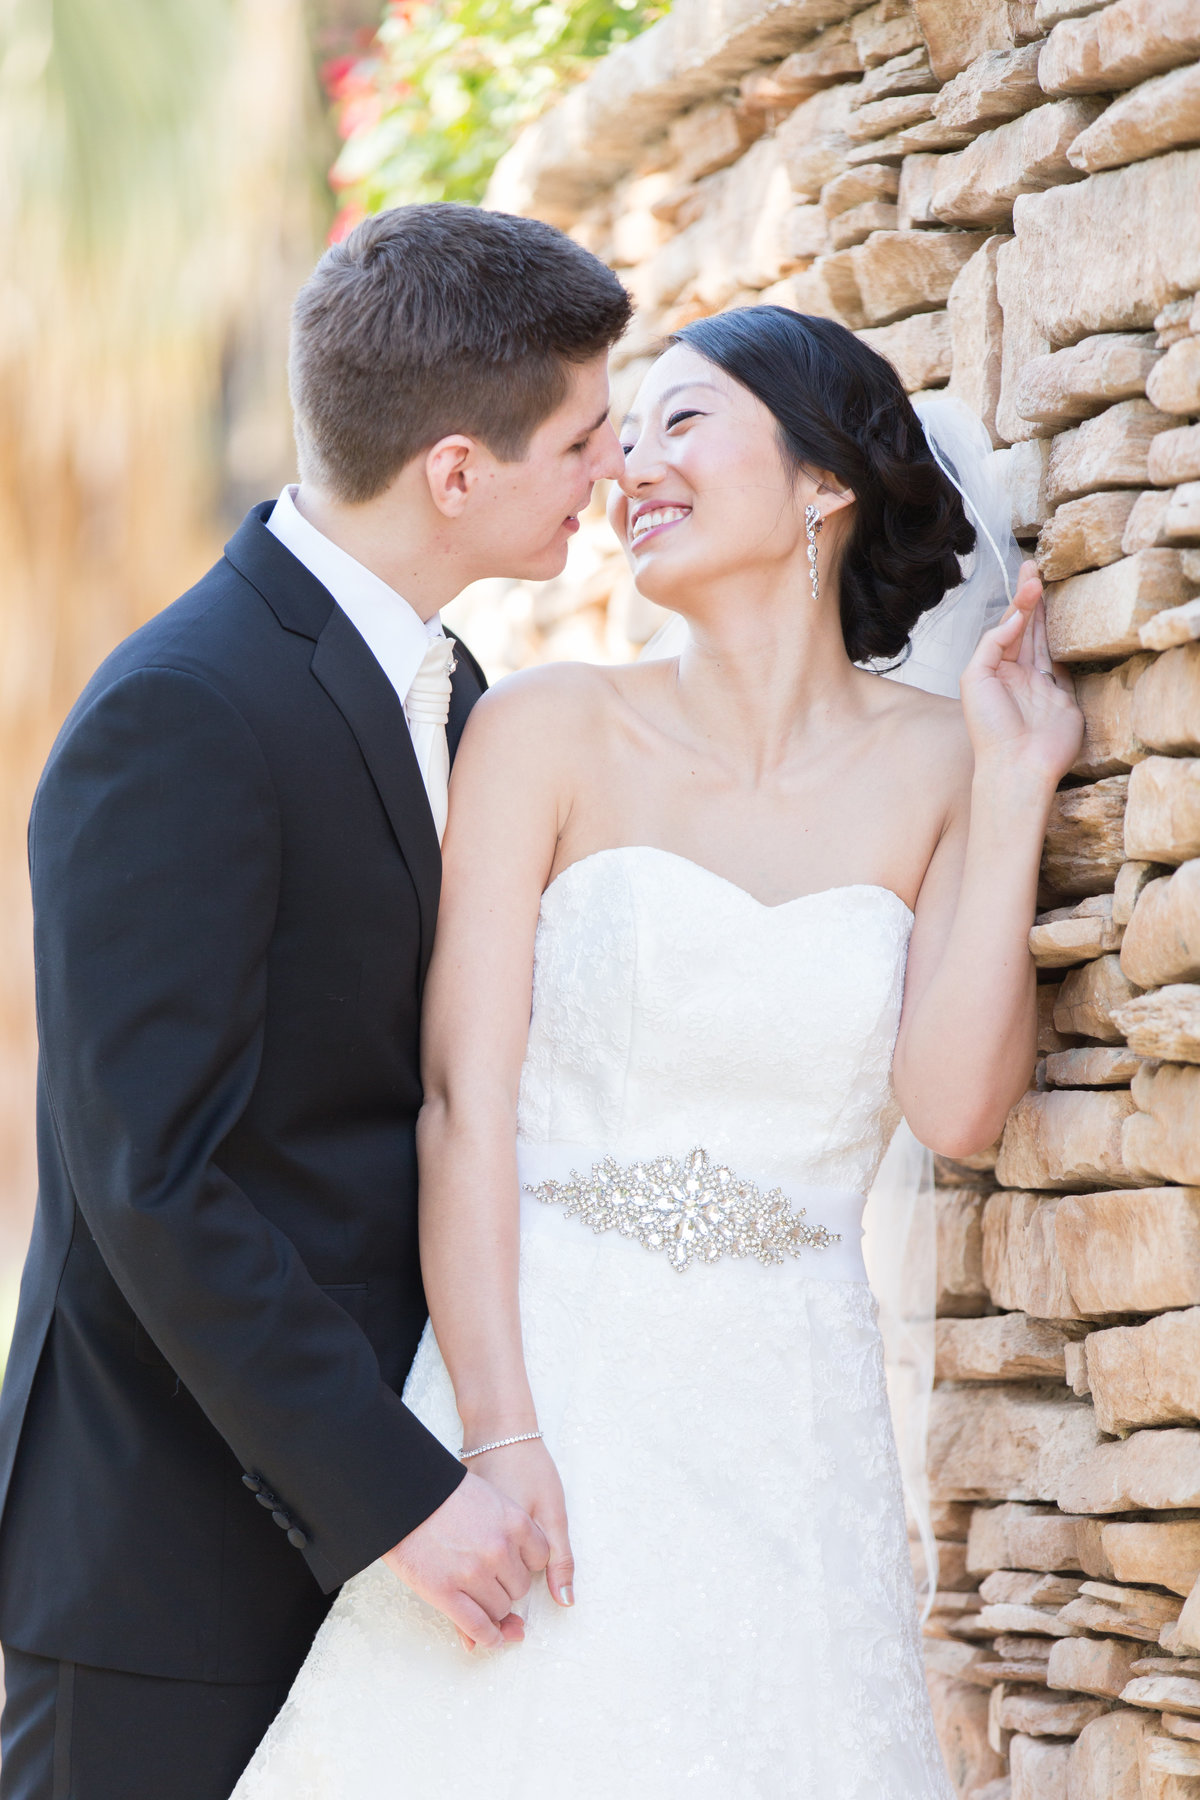 First Look photos at Desert Willow, Palm Desert Wedding Photography